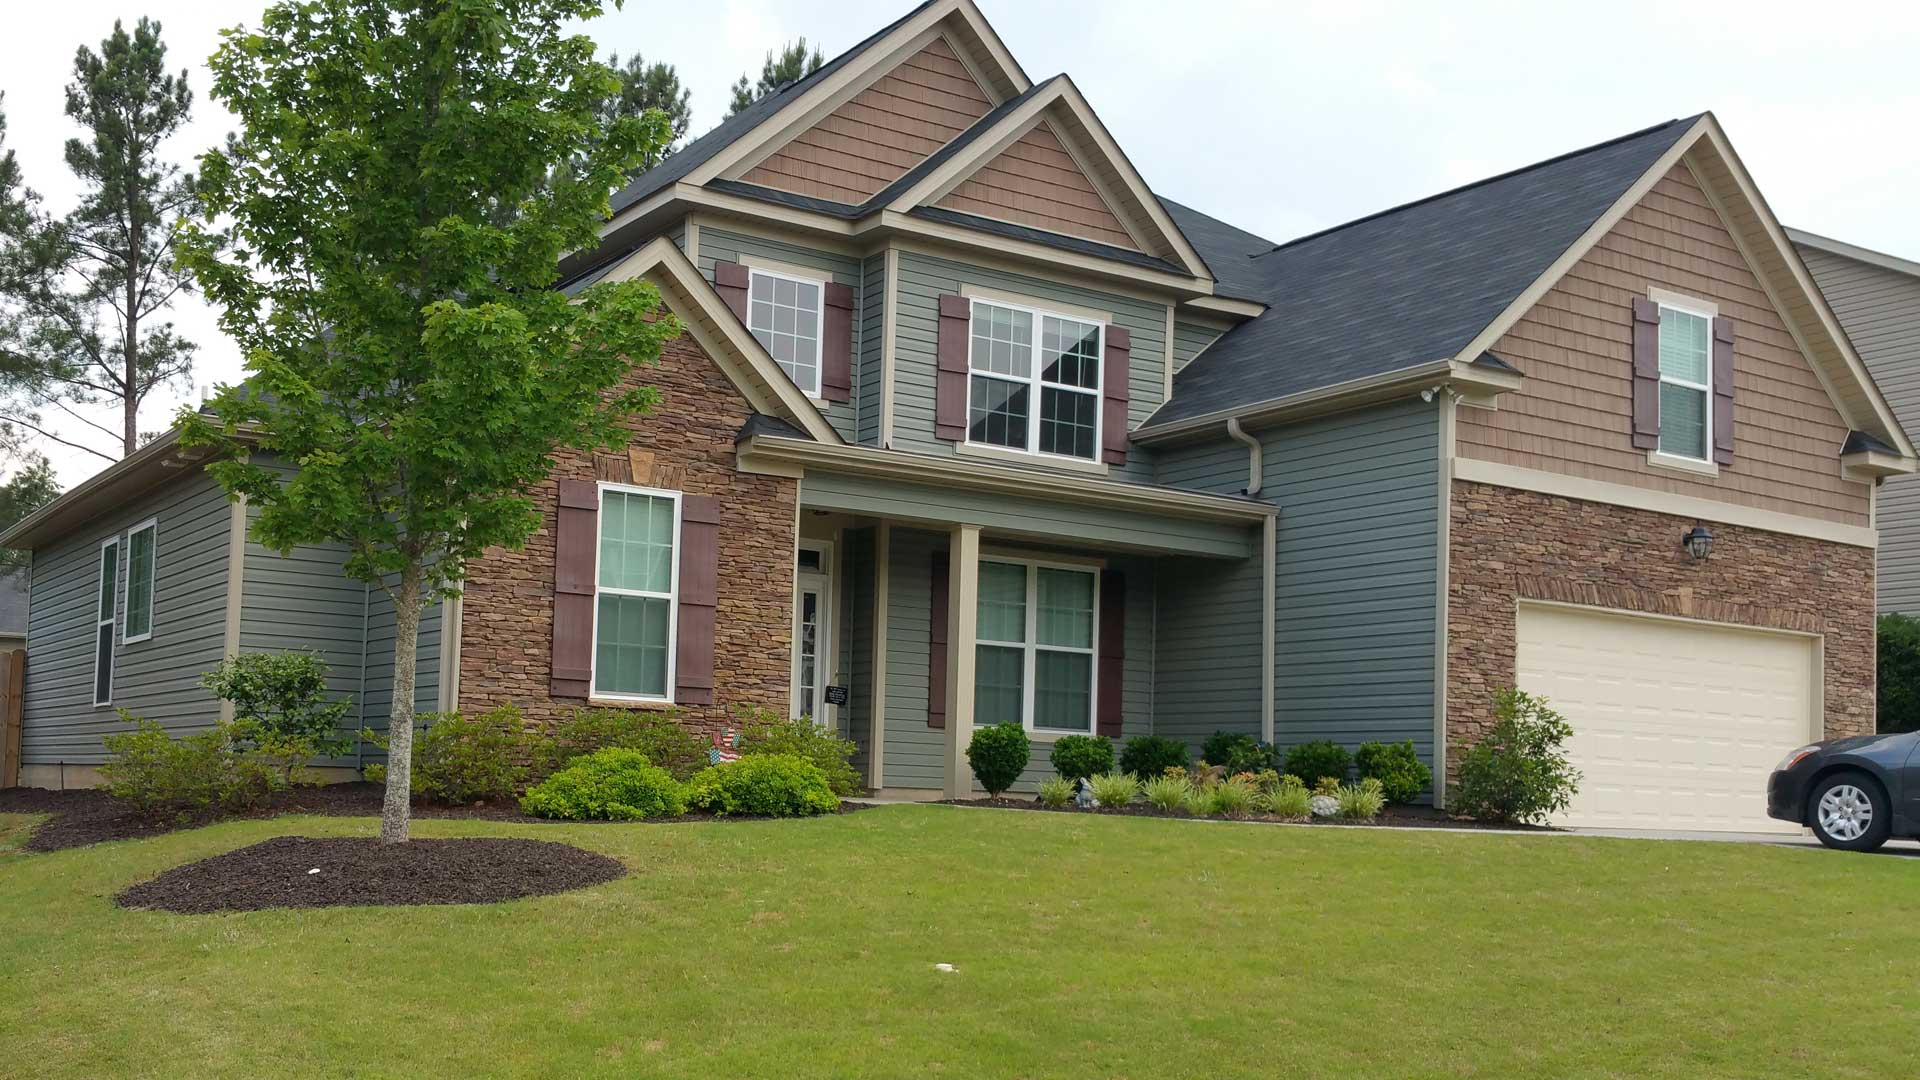 Recently completed lawn and landscape maintenance at a residential property in Evans.